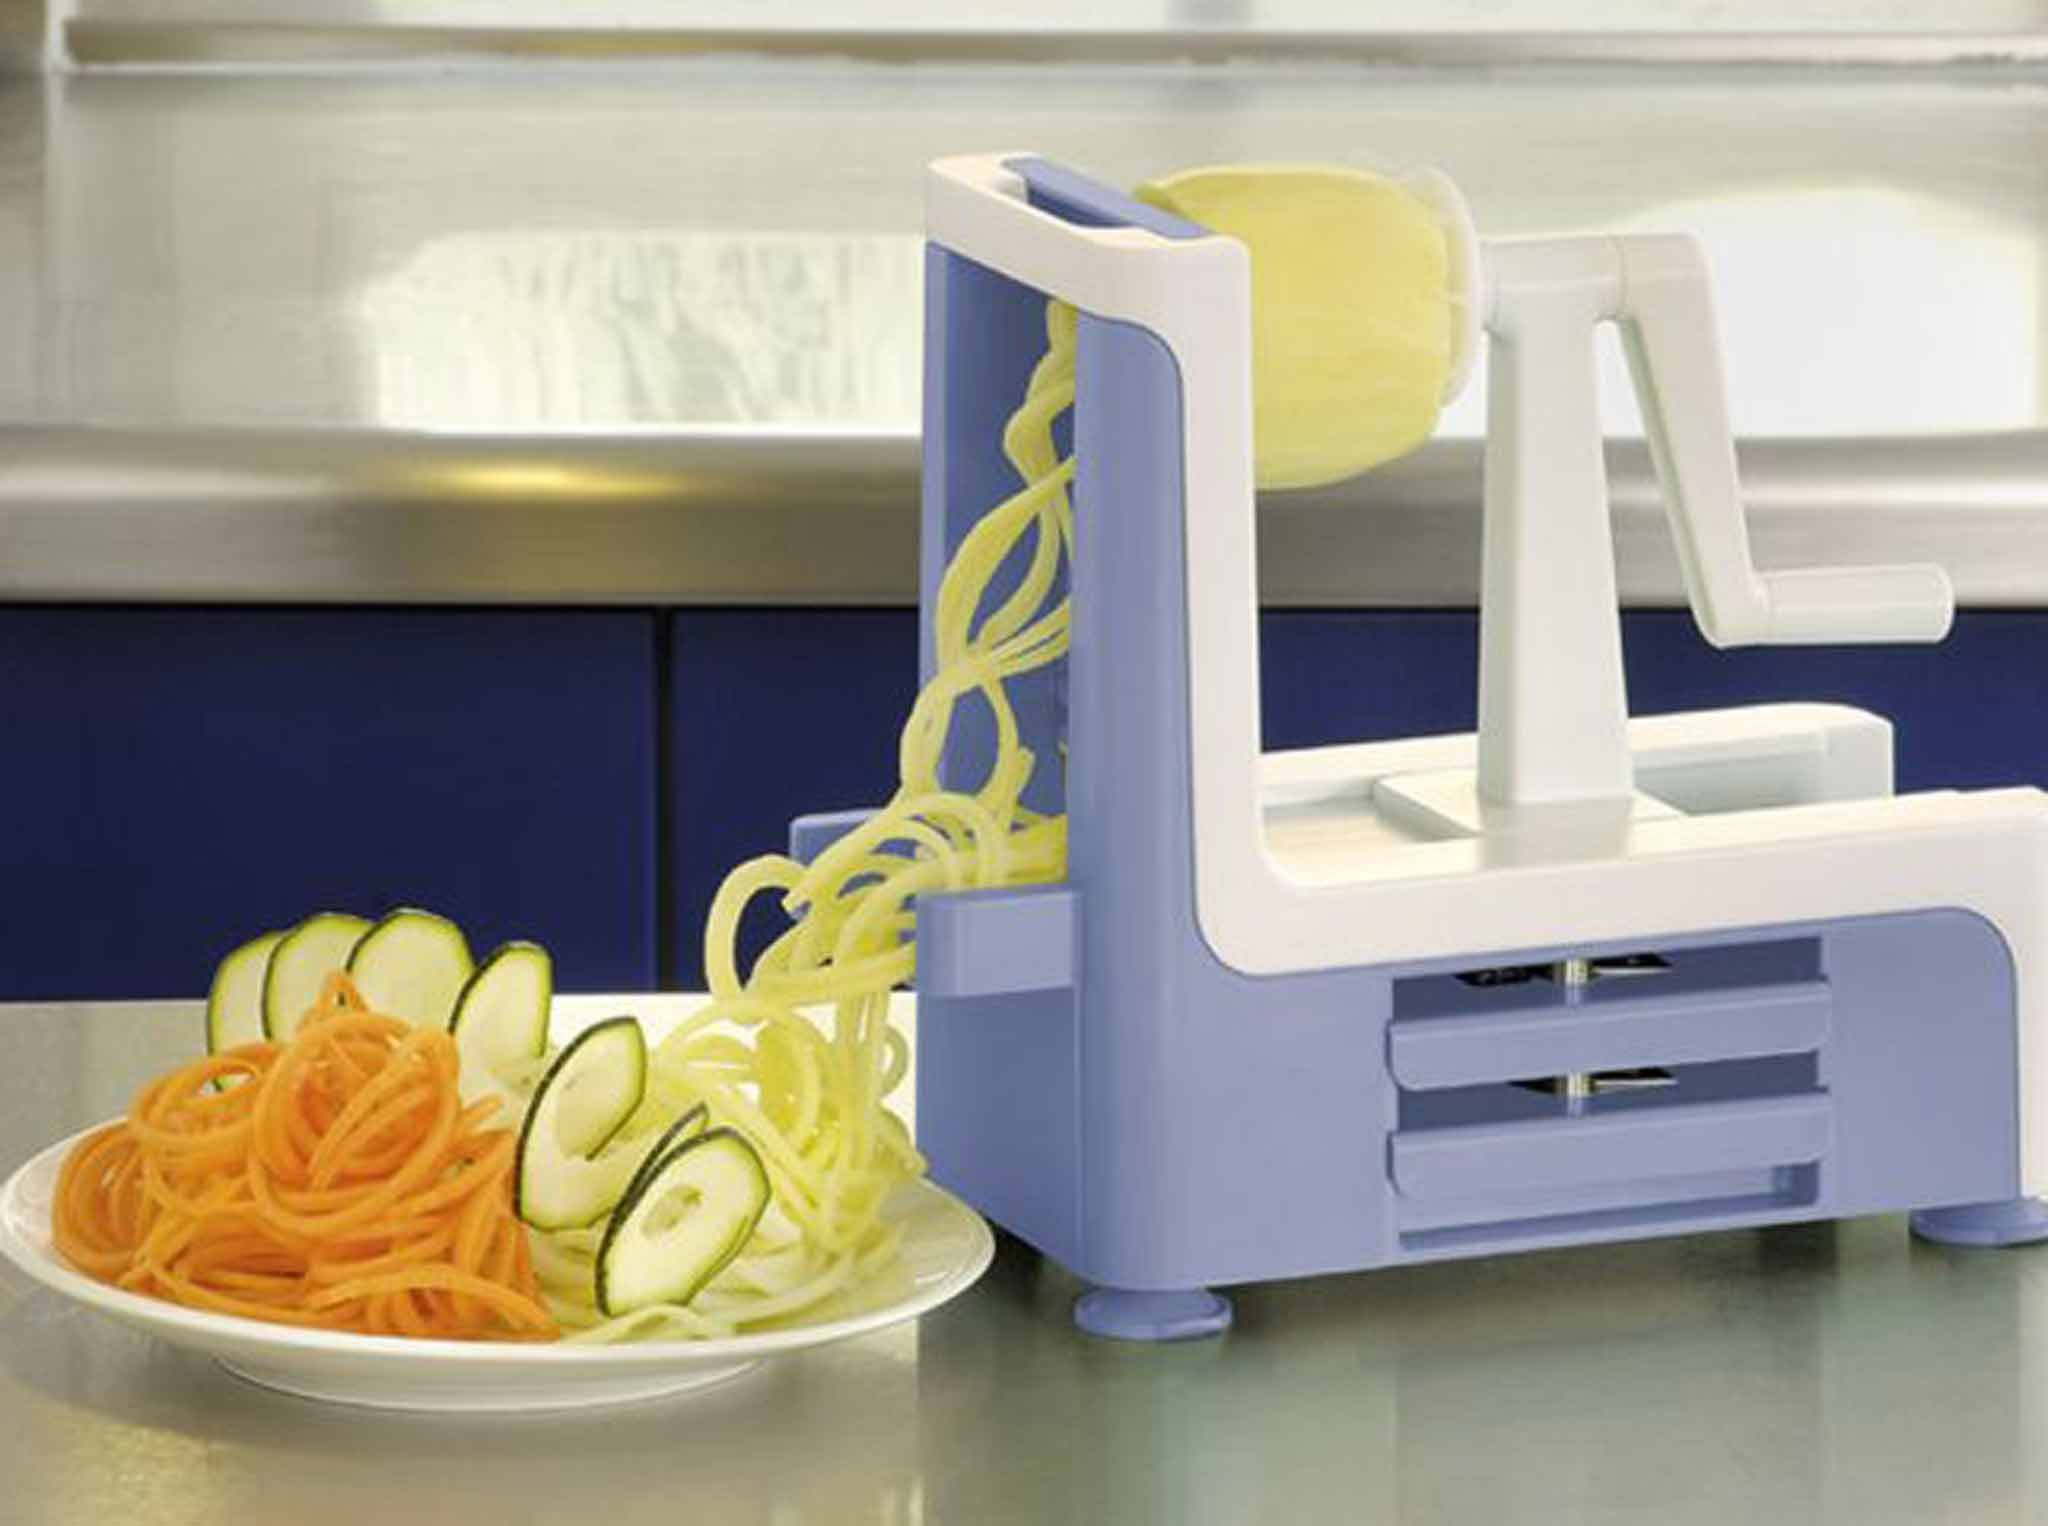 the latest kitchen gadgets slim trash can for spiralizer welcome to must have